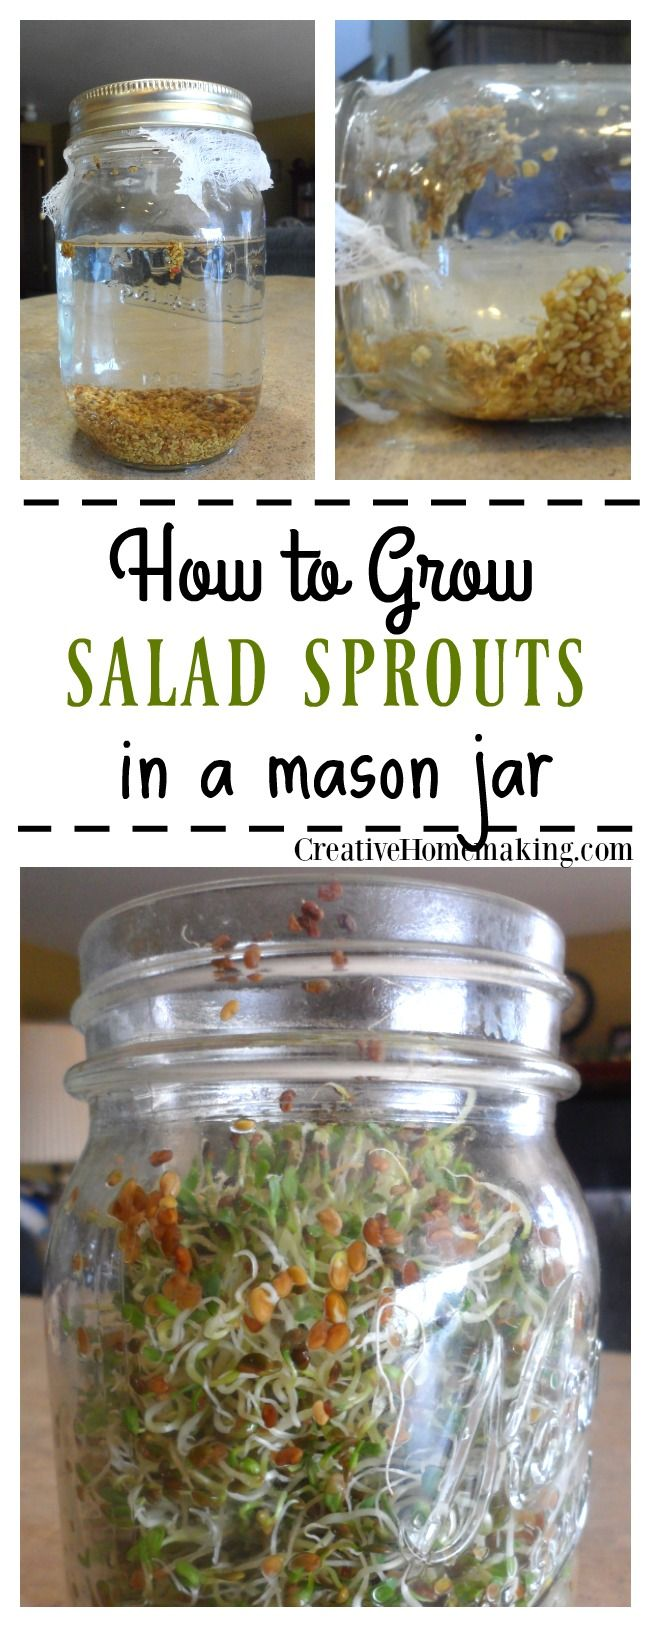 Easy instructions for growing your own salad sprouts from seed in a mason jar on the kitchen counter.